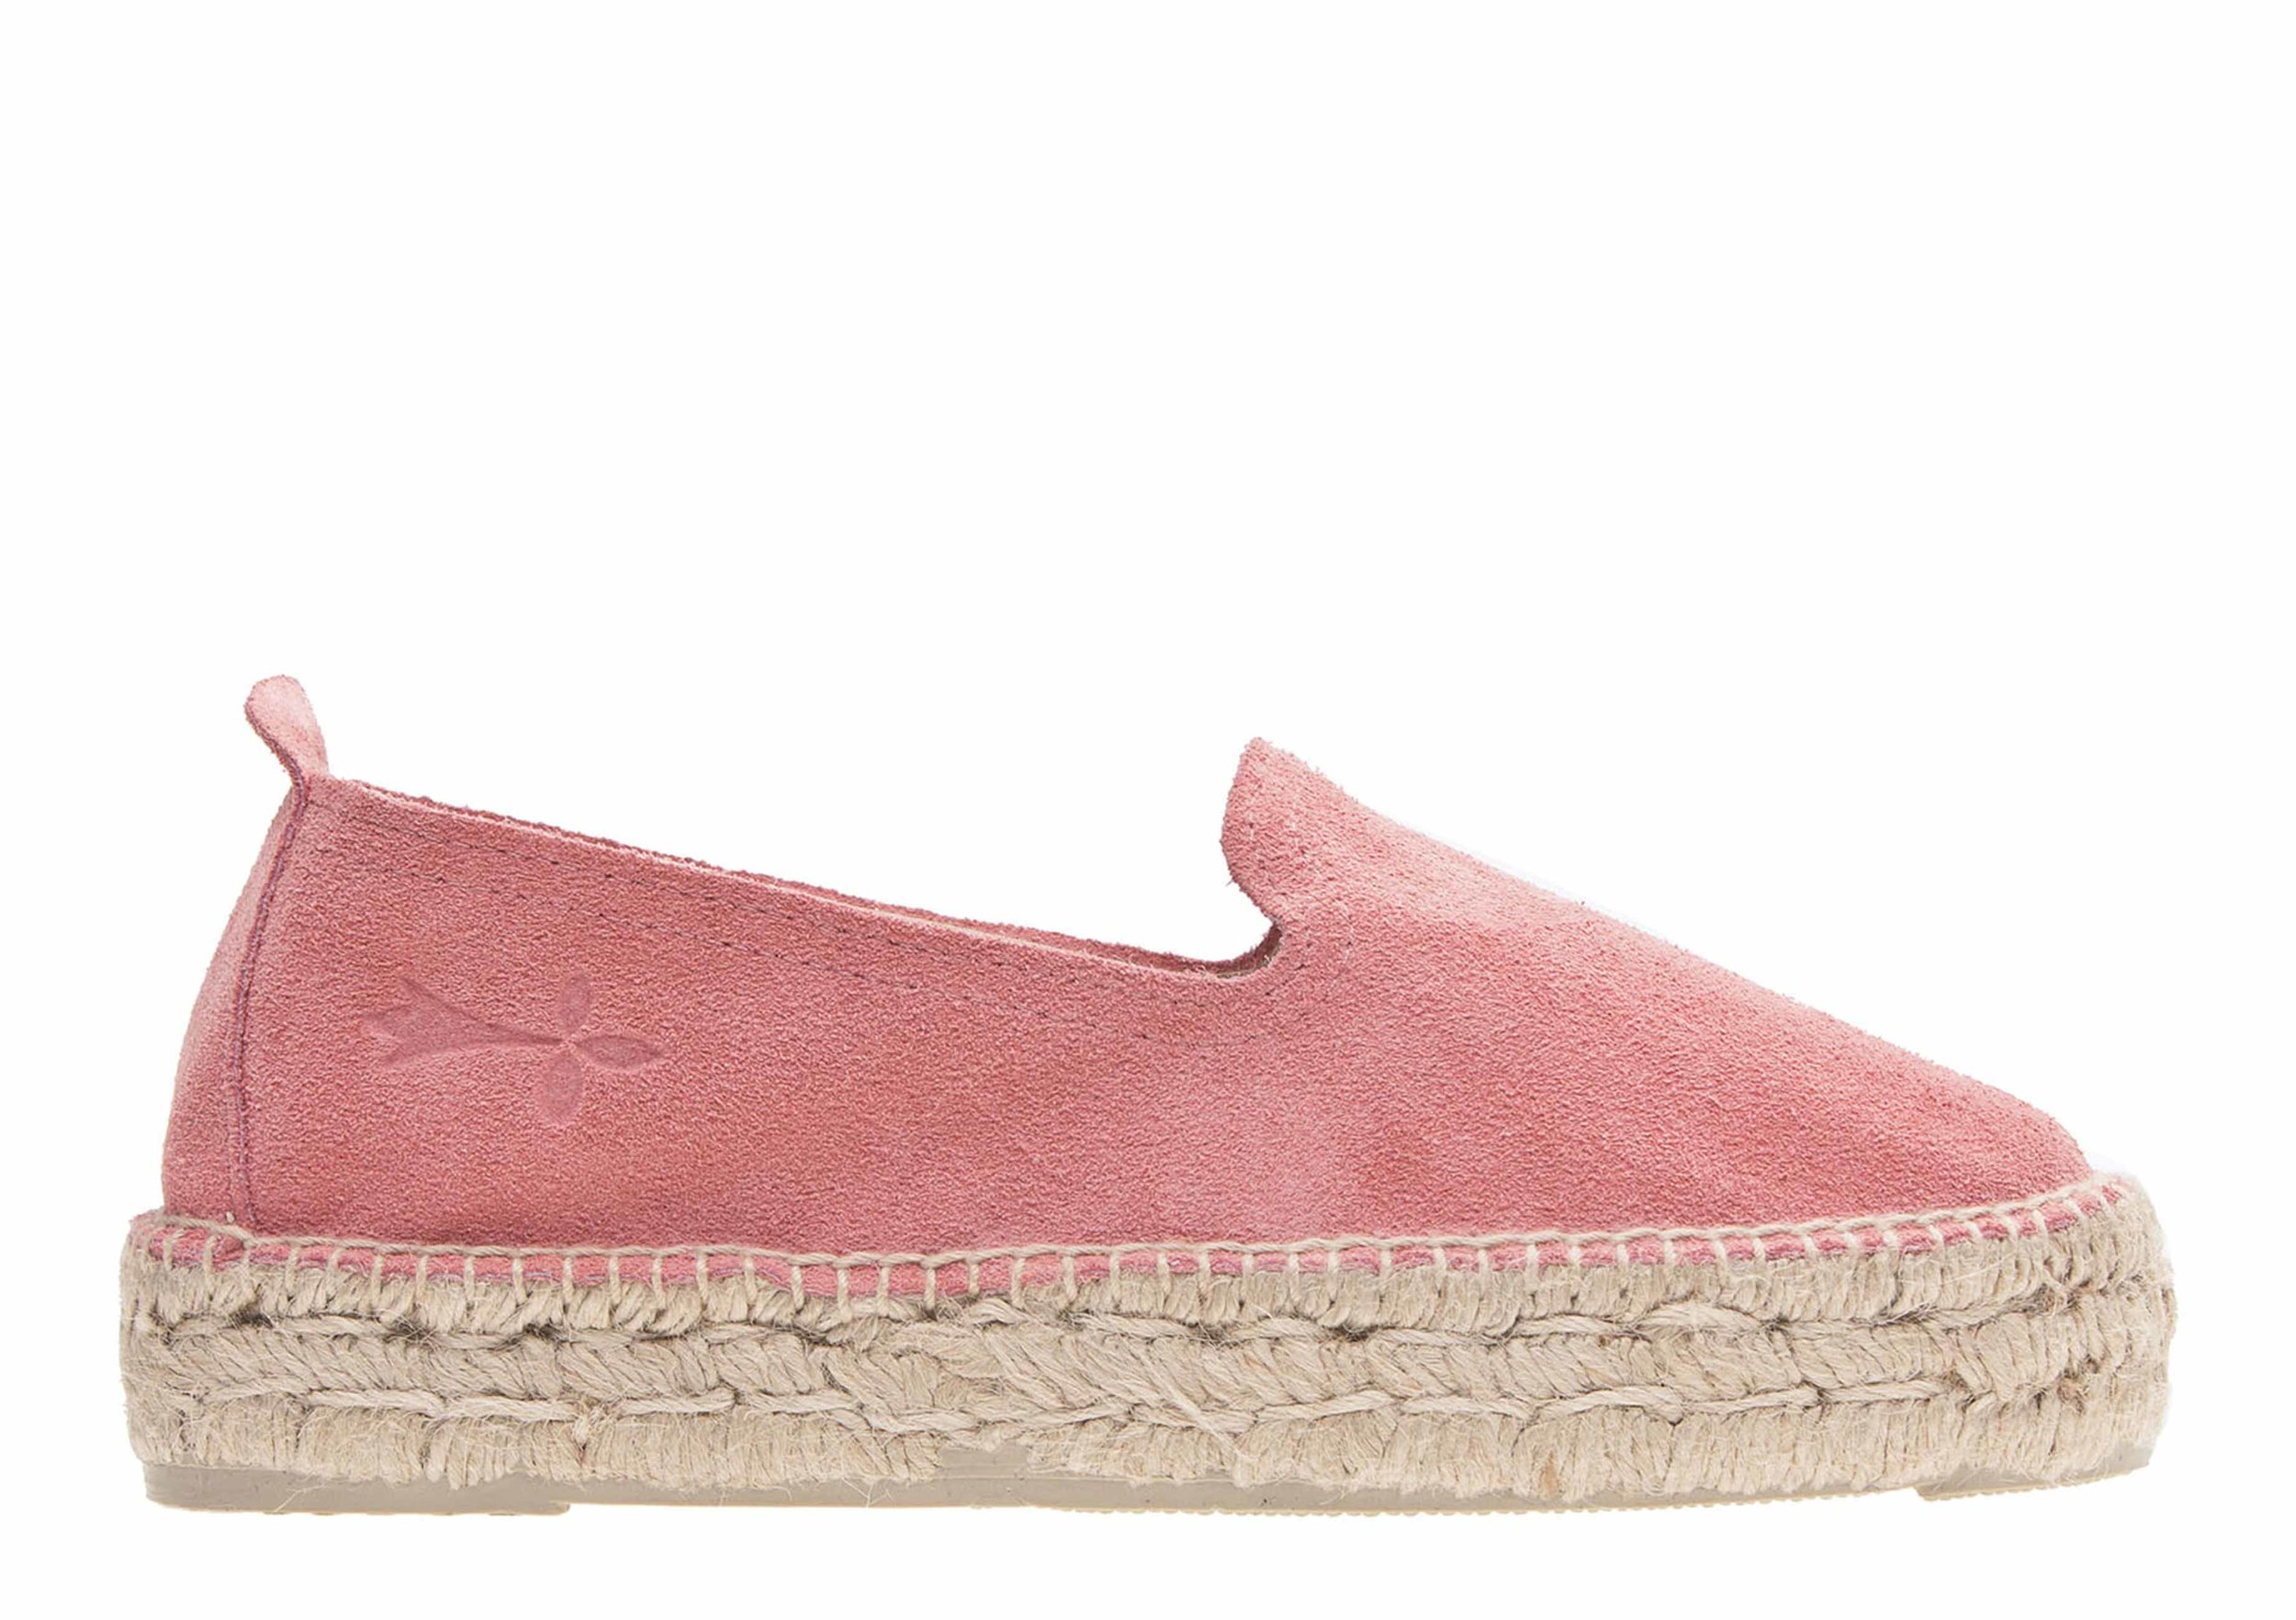 04764e3bdd5 MANEBÍ - Espadrilles Handmade in Spain - Official Website - ESPADRILLES -  HAMPTONS - Paradise Pink